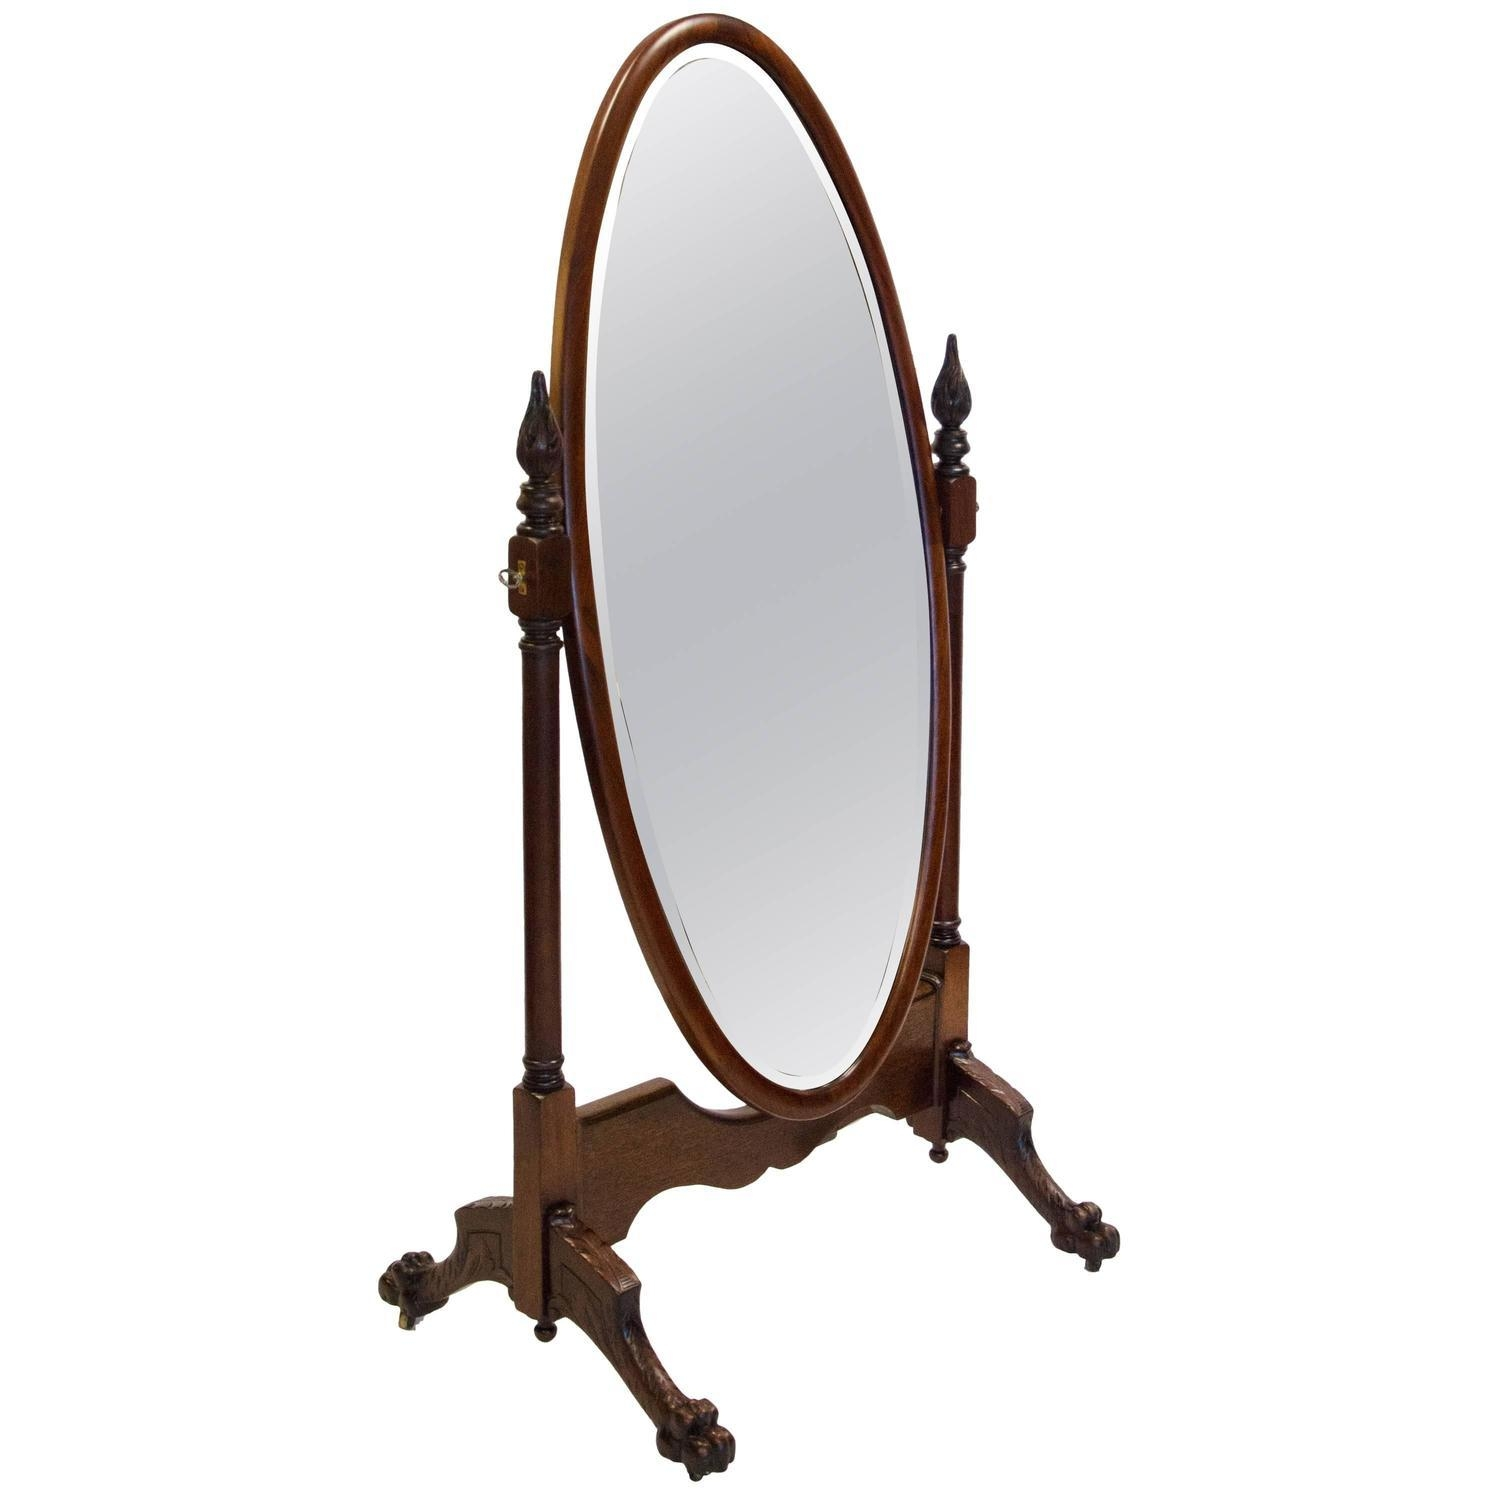 Antique & Vintage Floor Mirrors And Full Length Mirrors For Sale Inside Floor Dressing Mirror (Image 1 of 20)